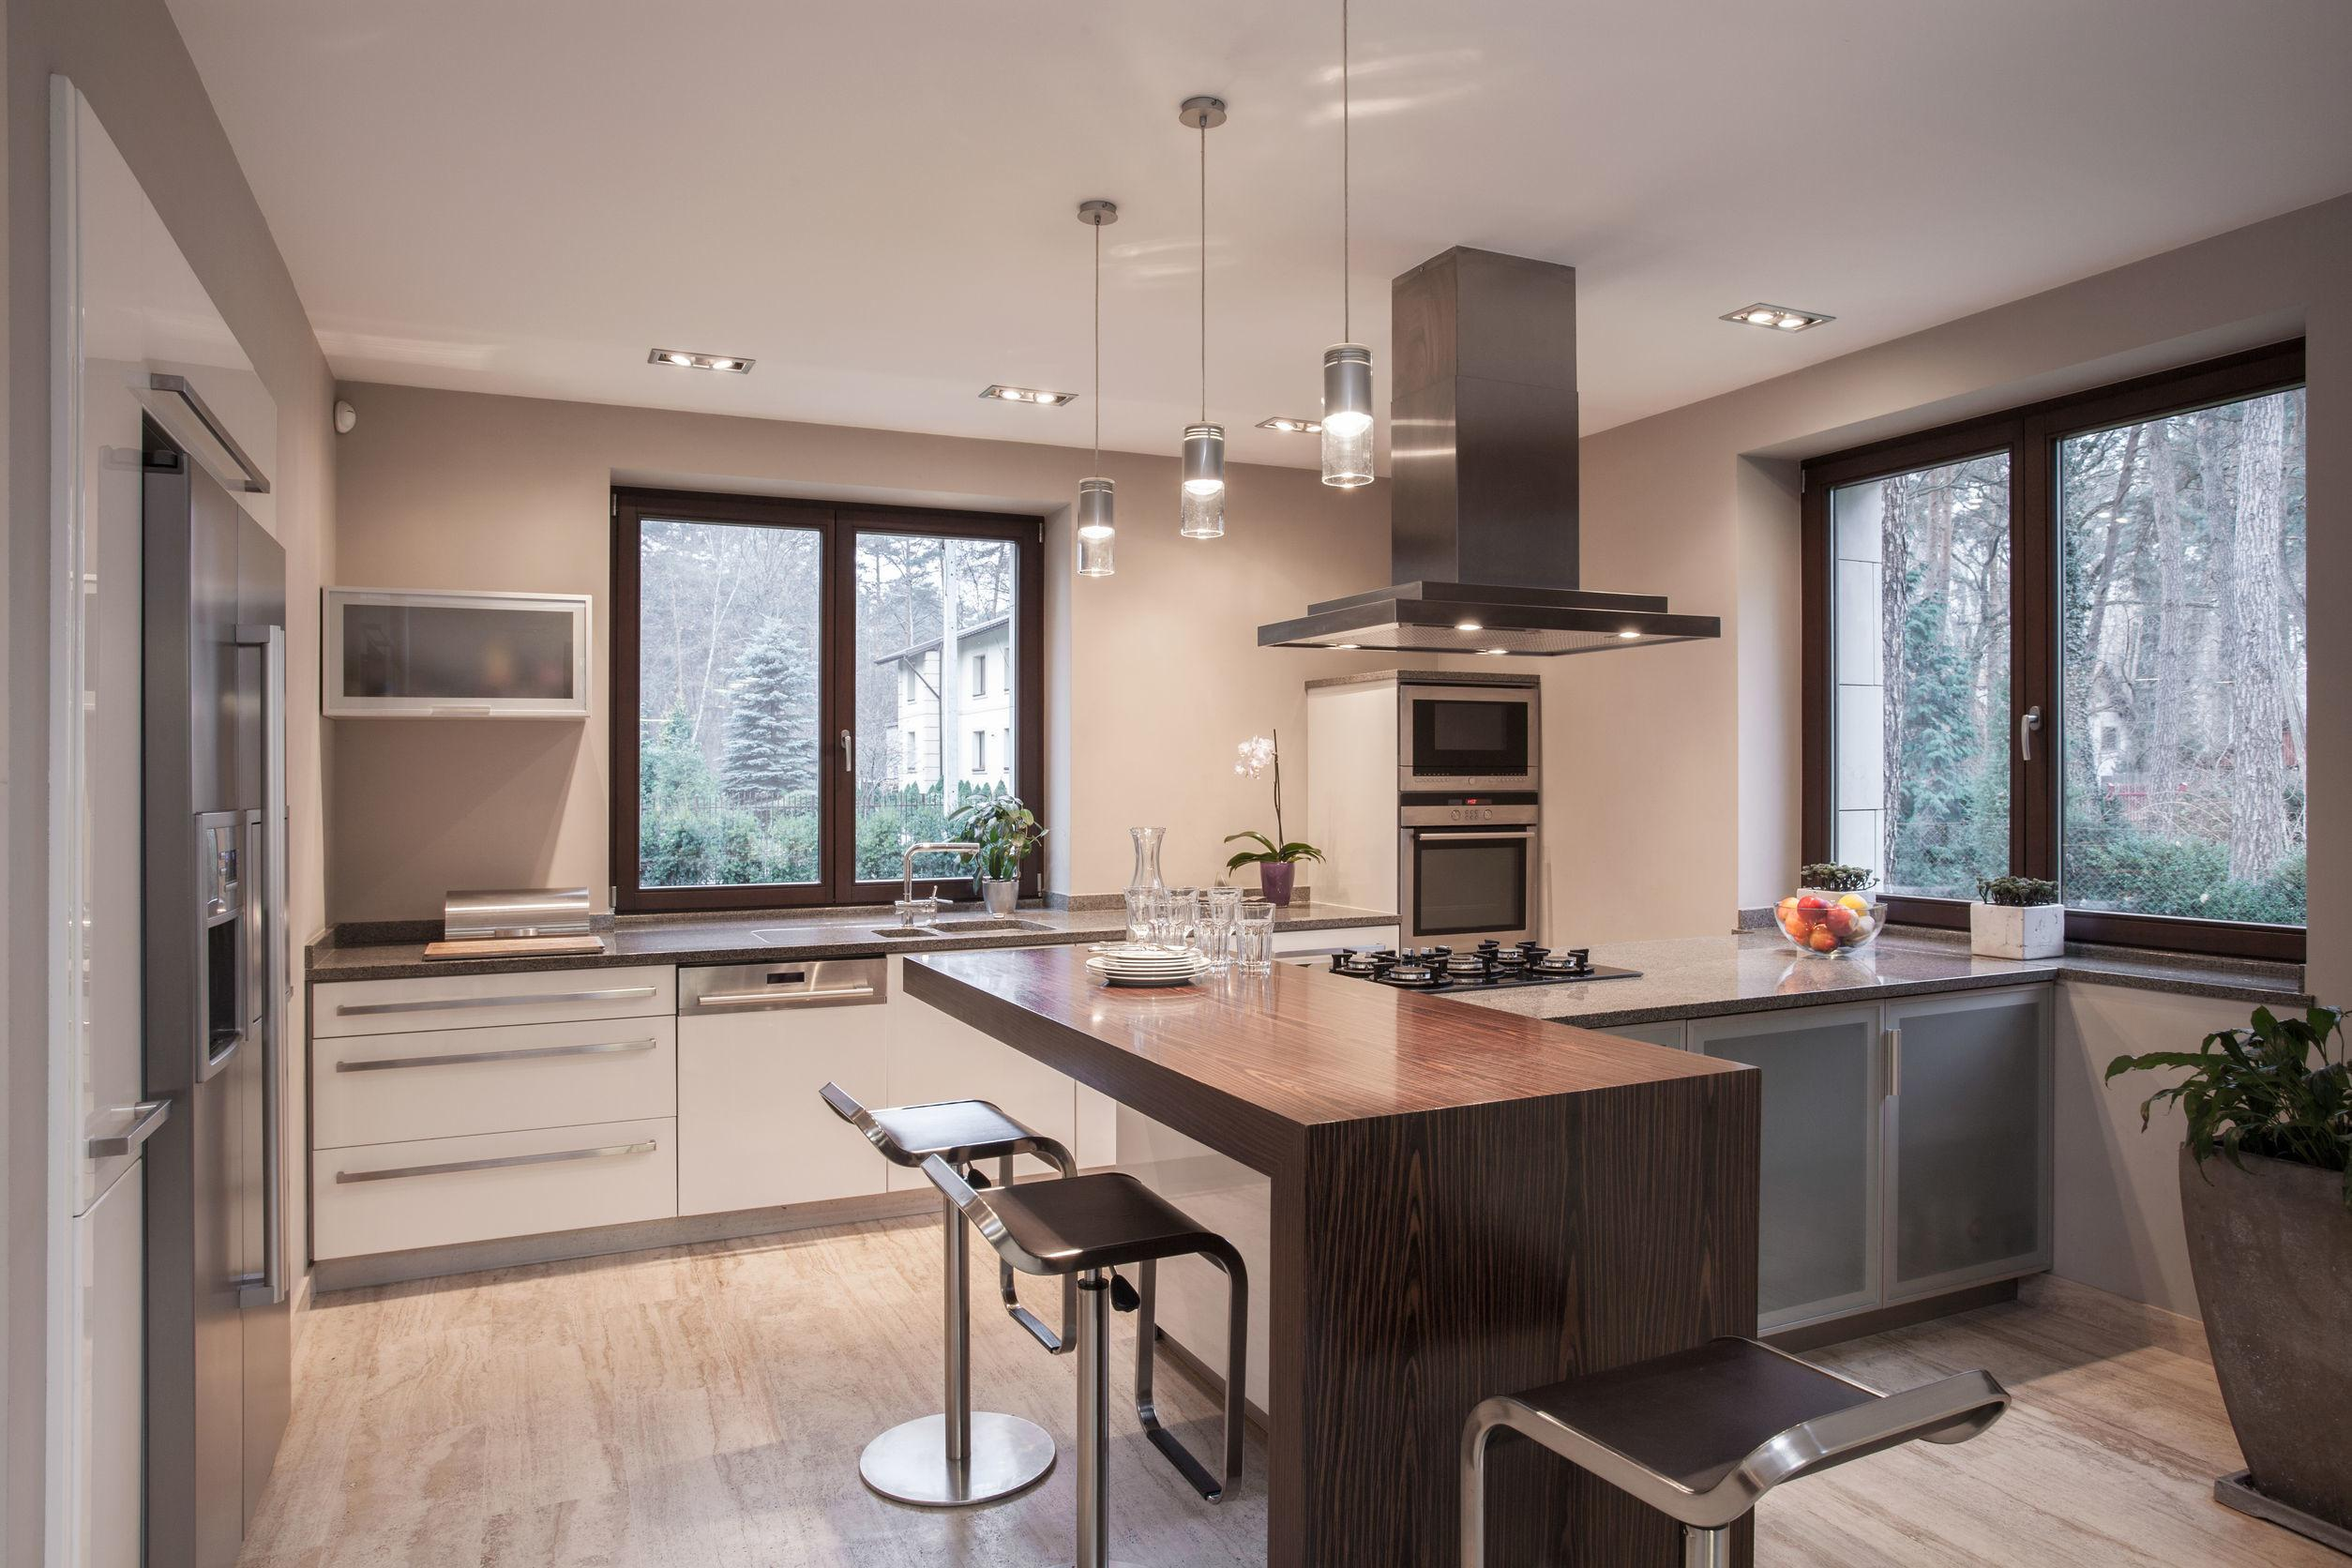 Choose Artistic Kitchens More Your Kitchen